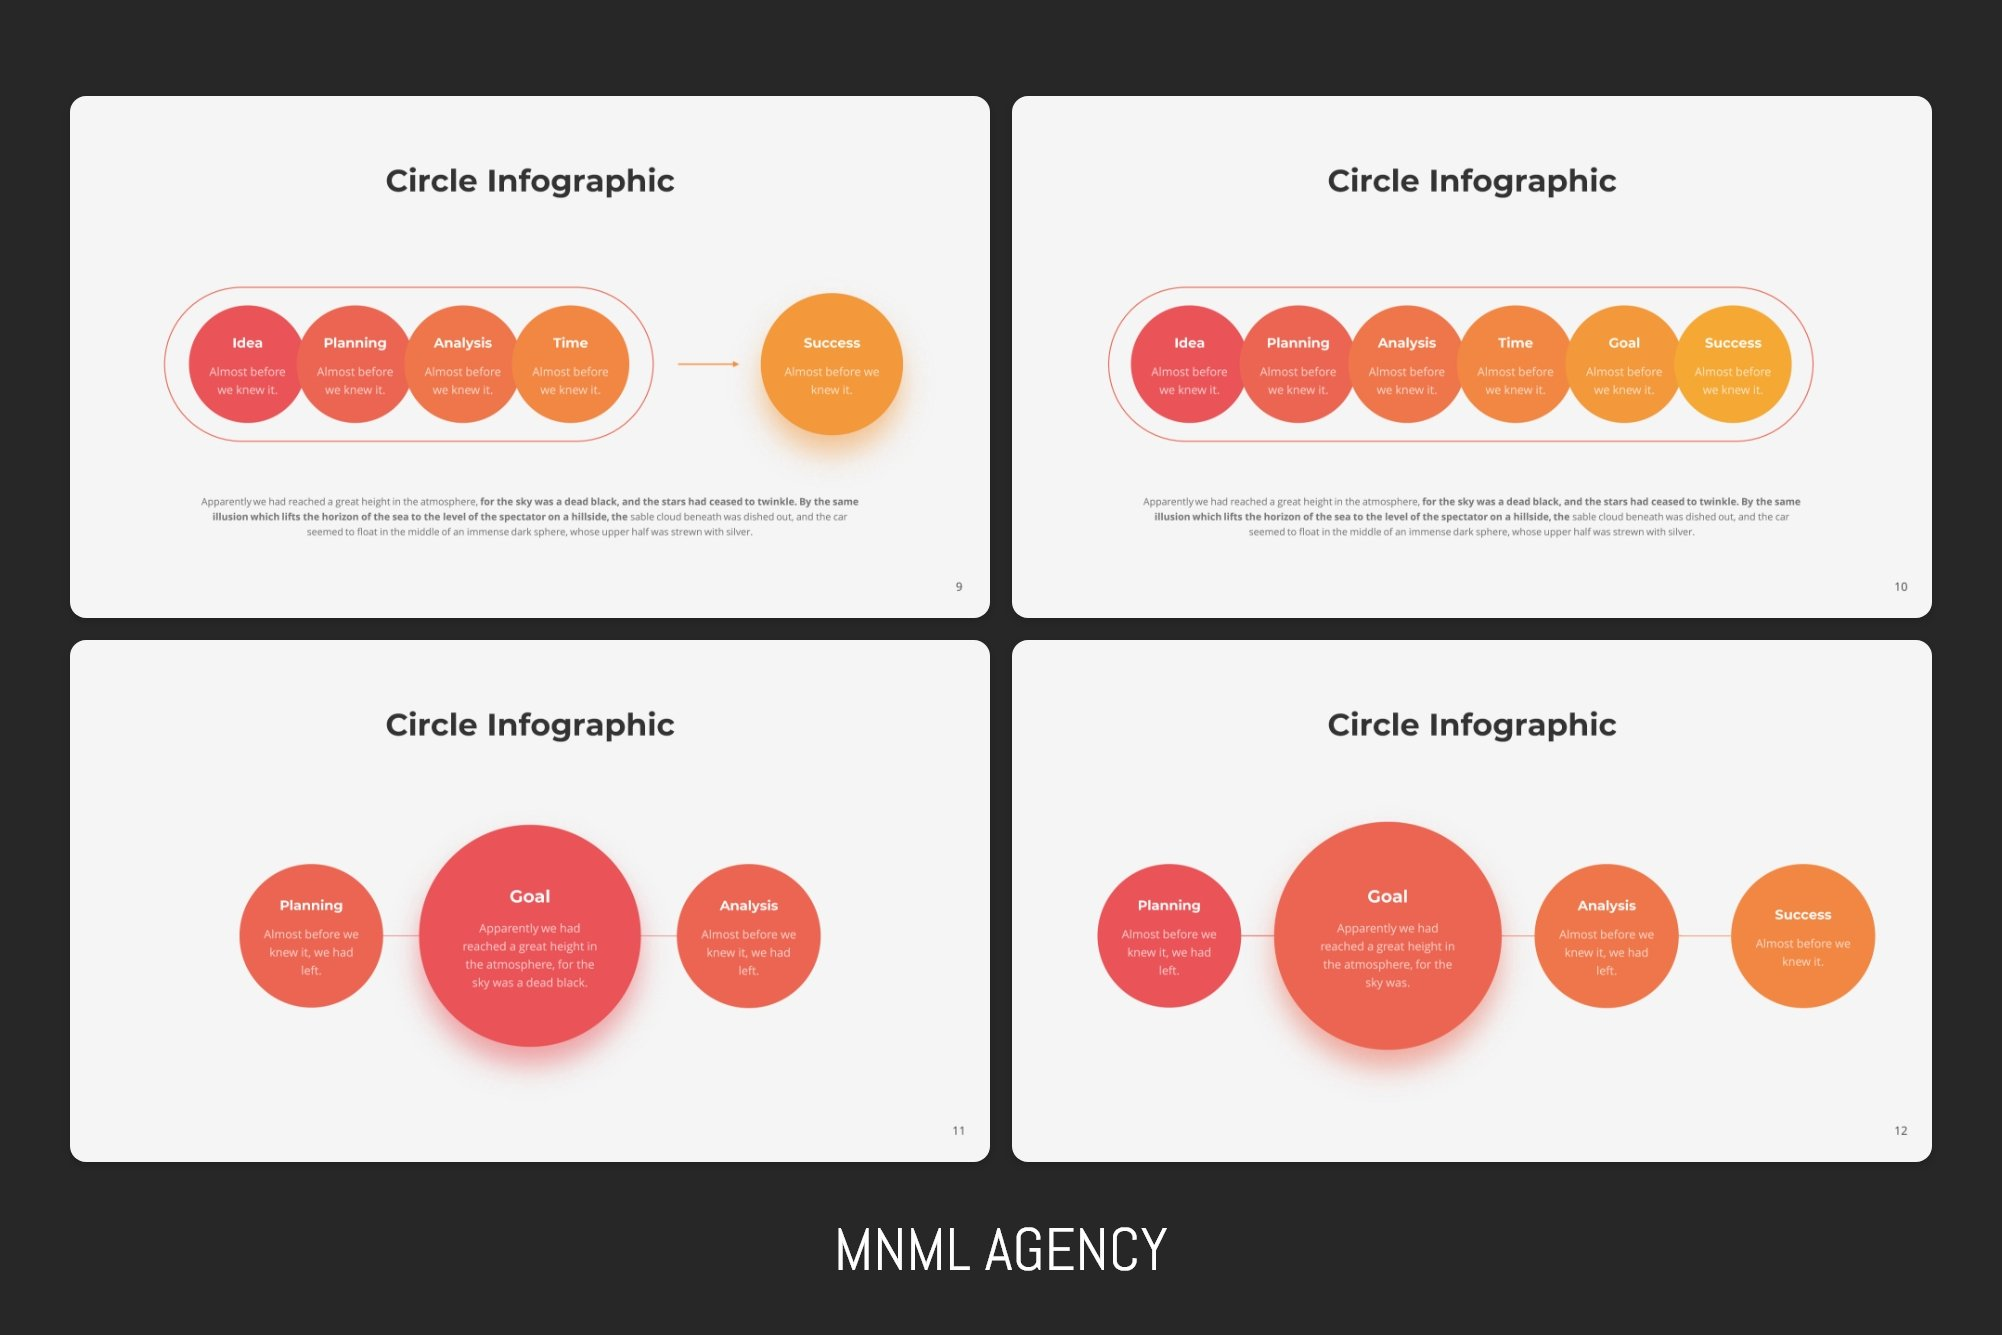 A lot of variants of circle infographic.